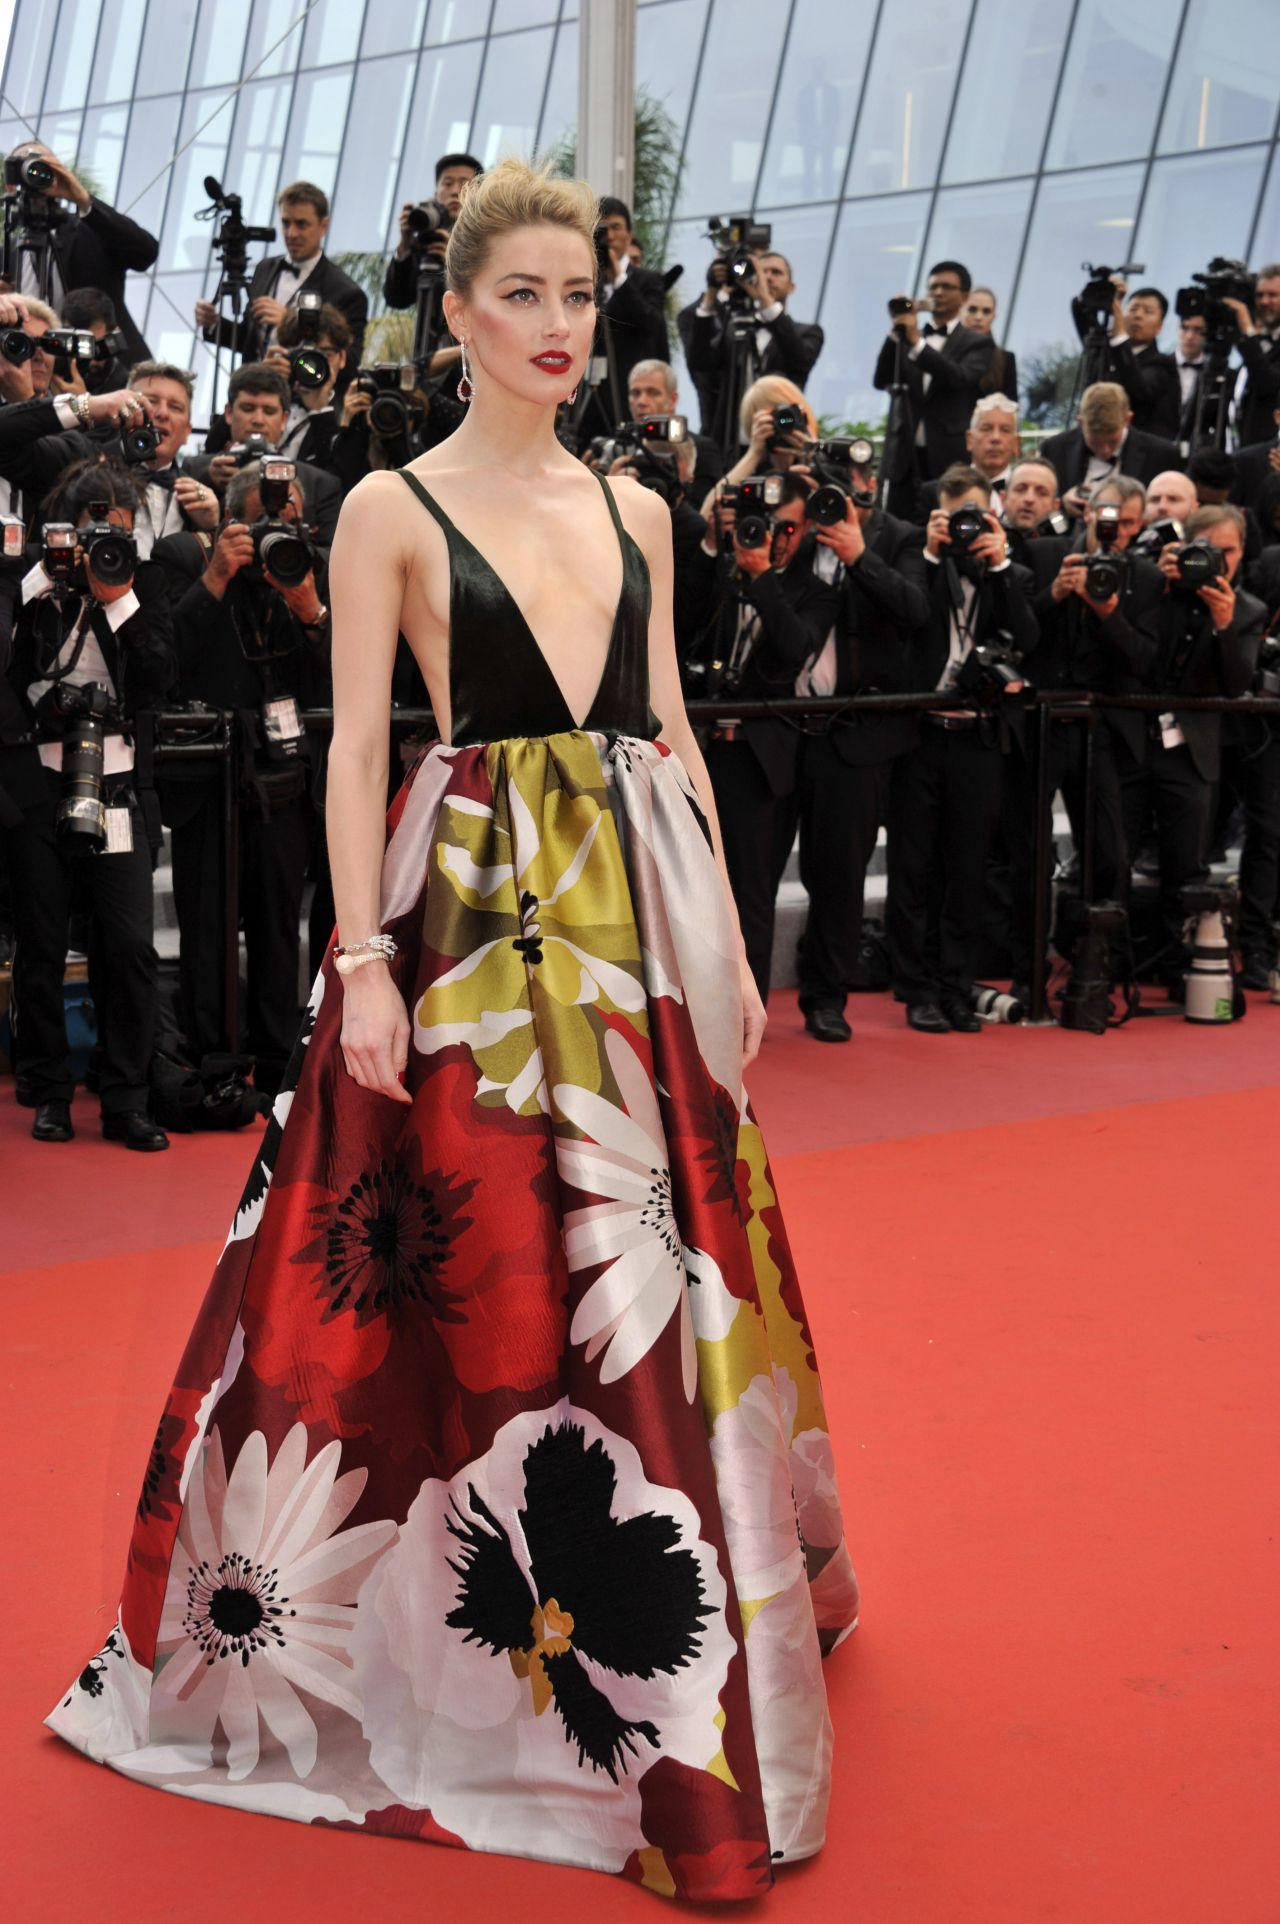 Amber Heard Sorry Angel Premiere At Cannes Film Festival